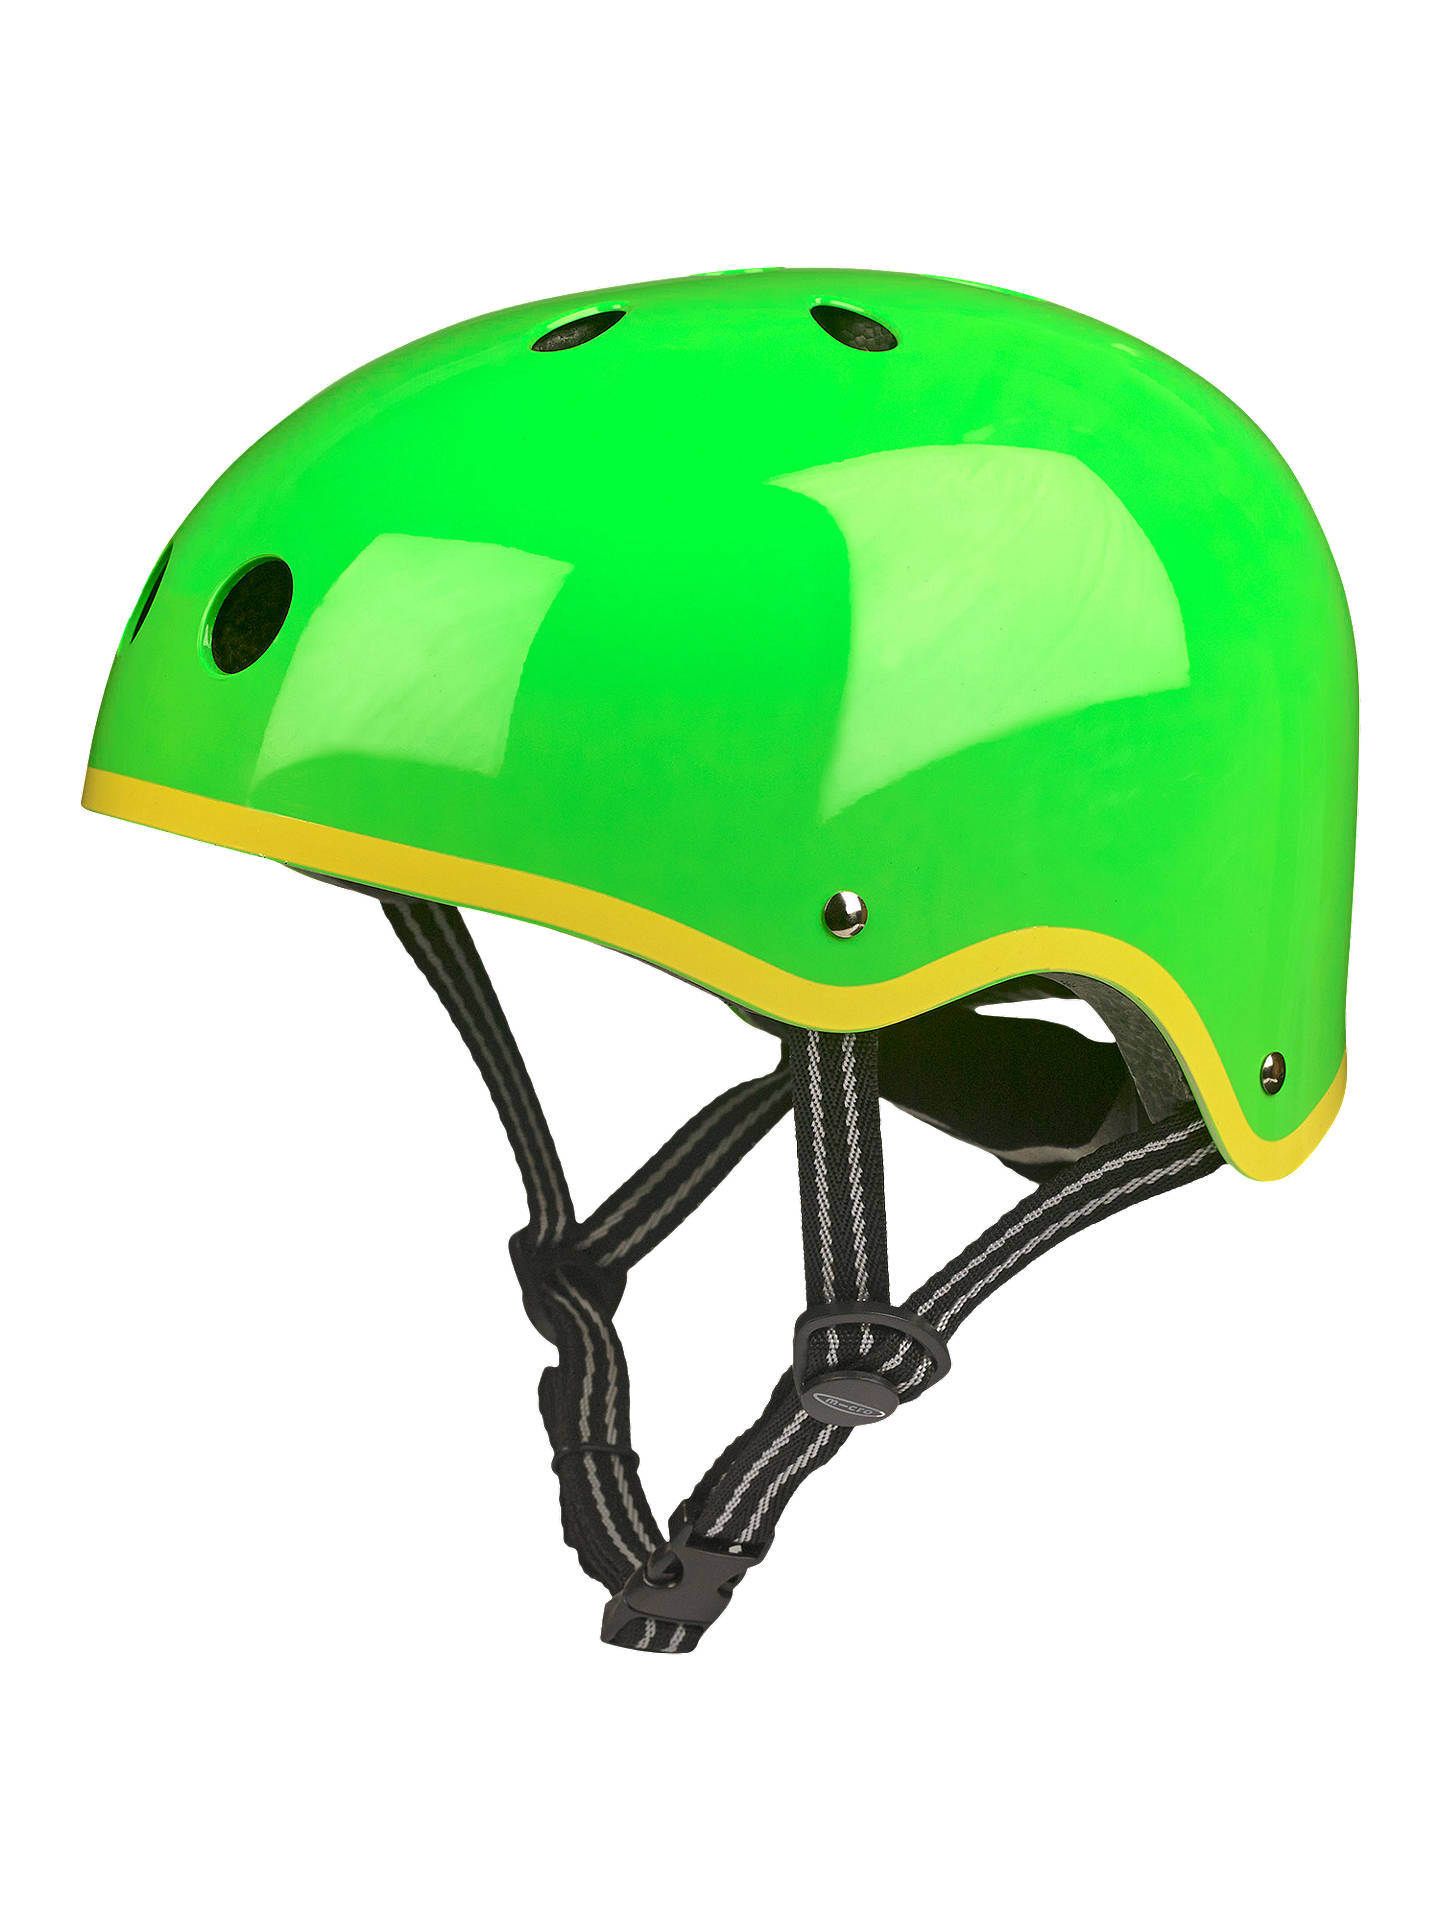 BuyMicro Scooter Safety Helmet, Glossy Green, Medium Online at johnlewis.com